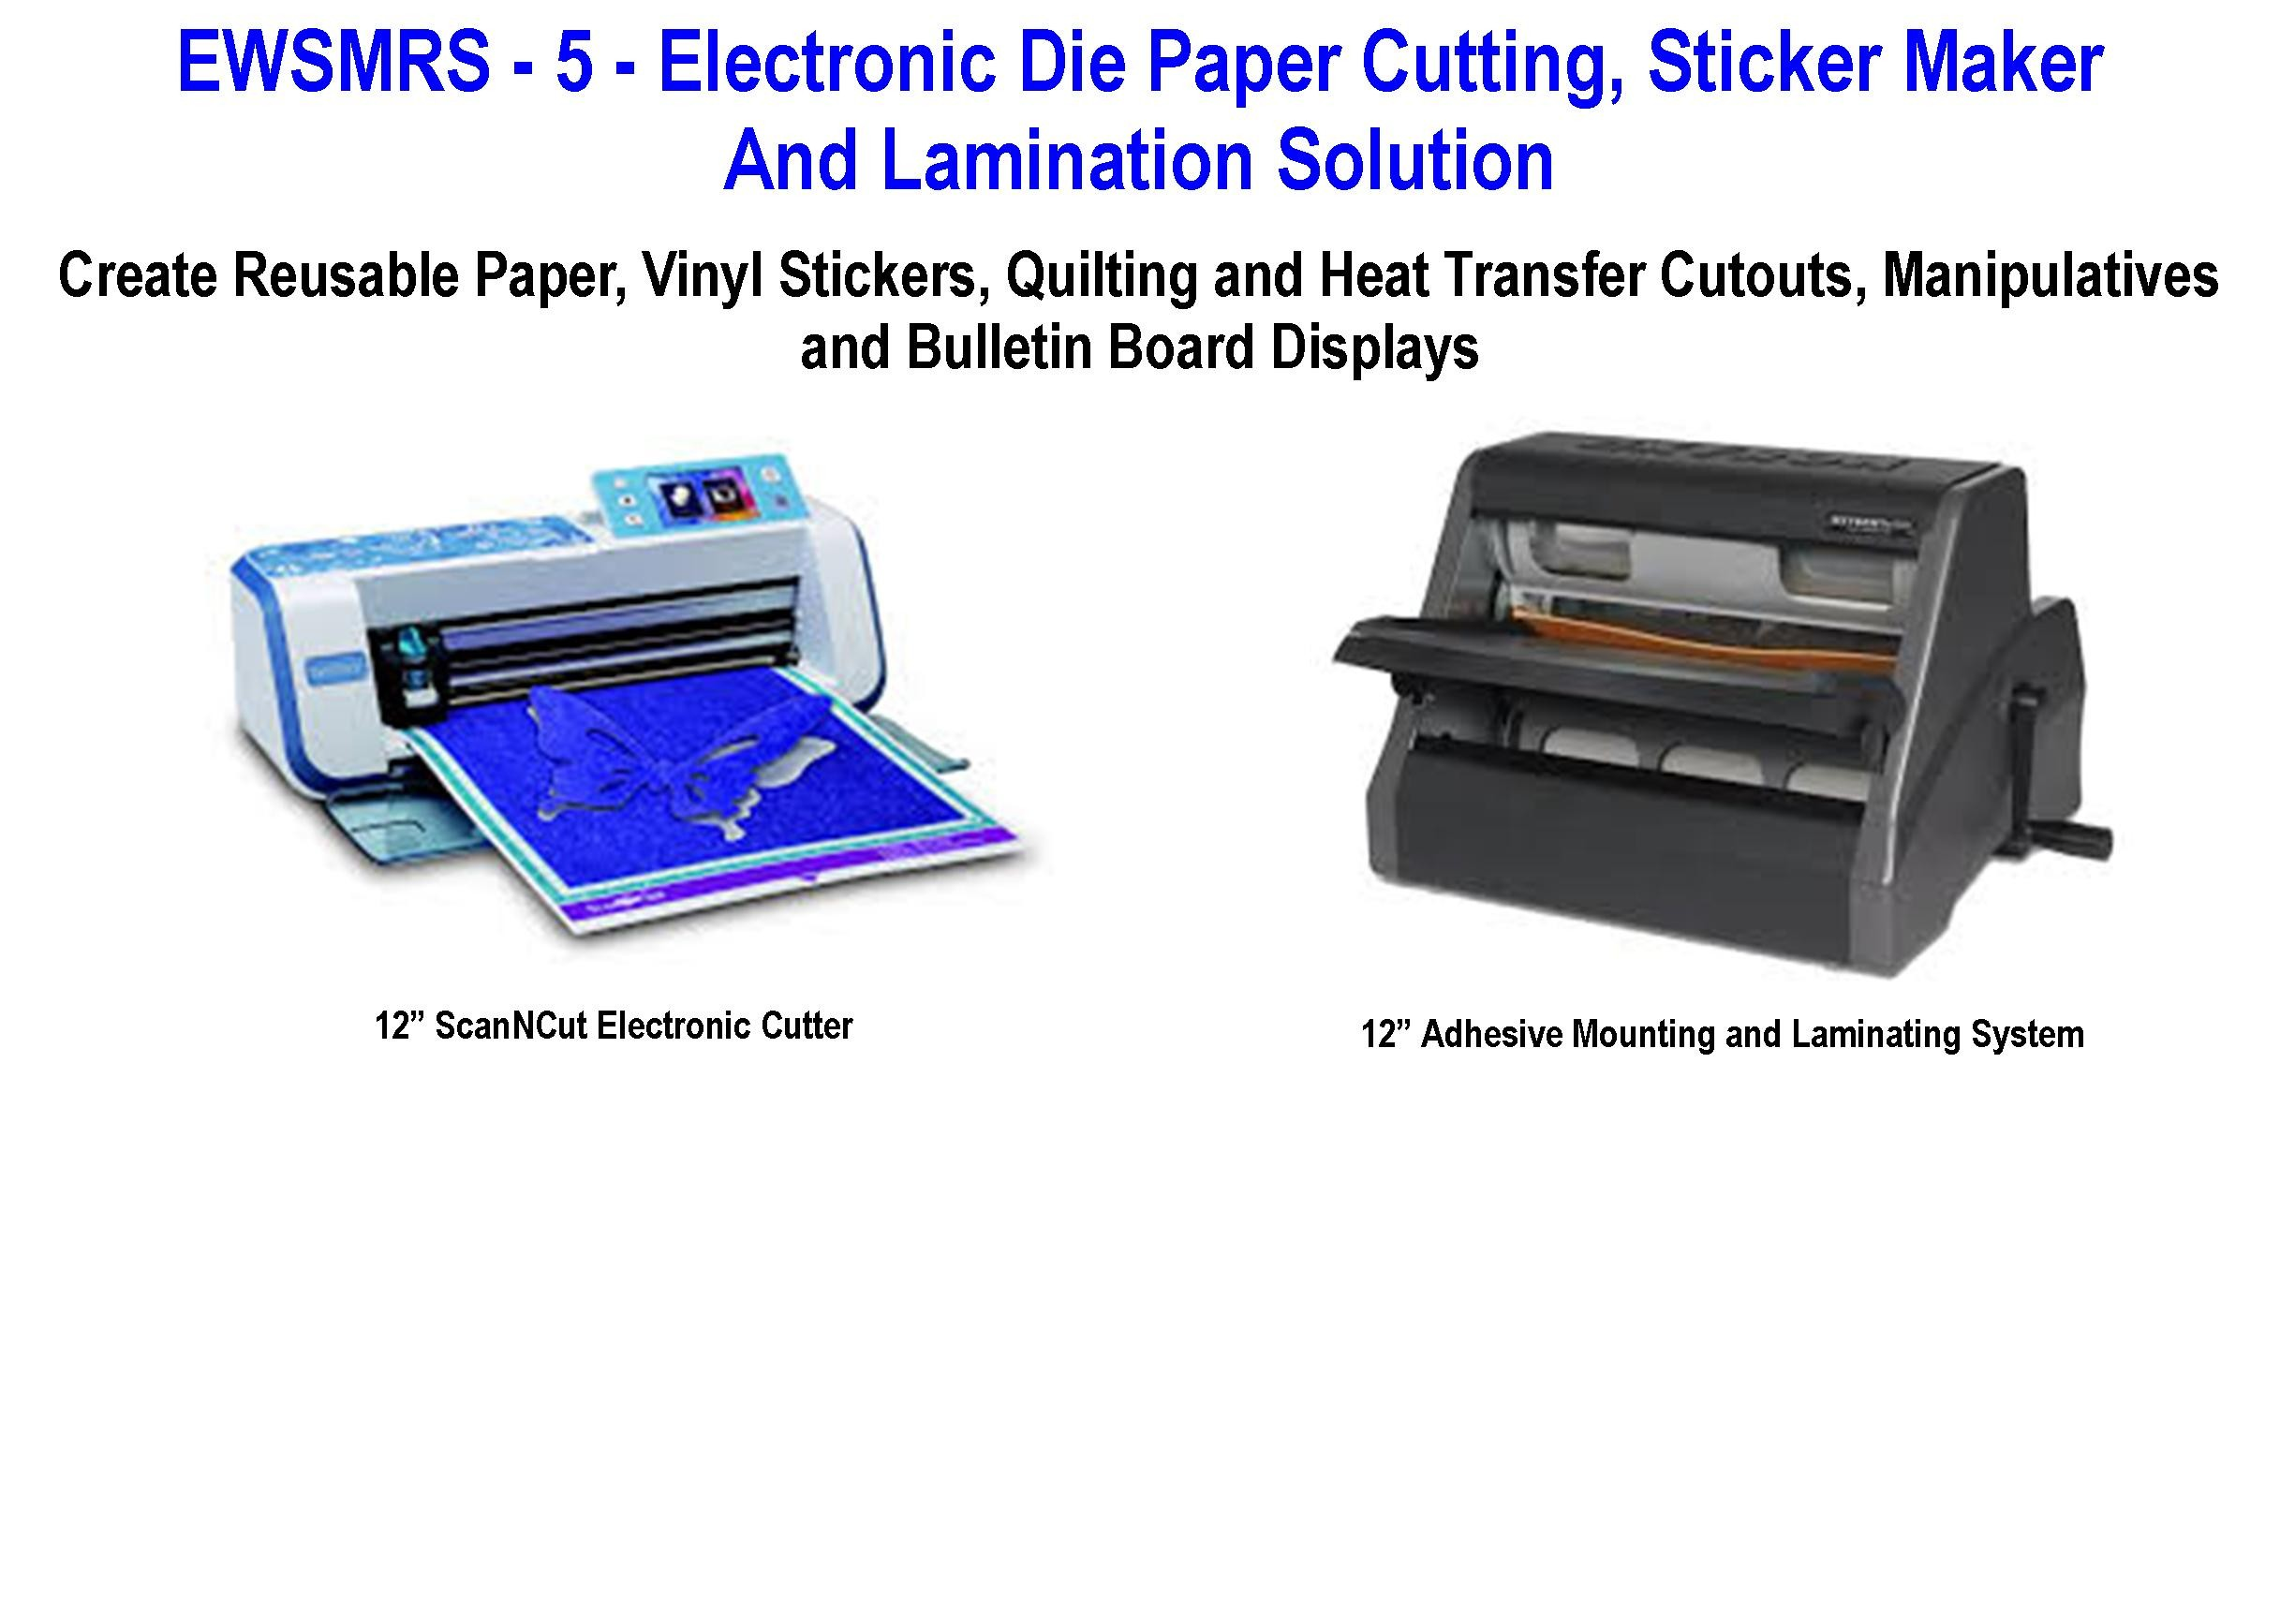 EWSMRS - 5 - Electronic Die Cutting, Sticker Maker and Lamination Solution